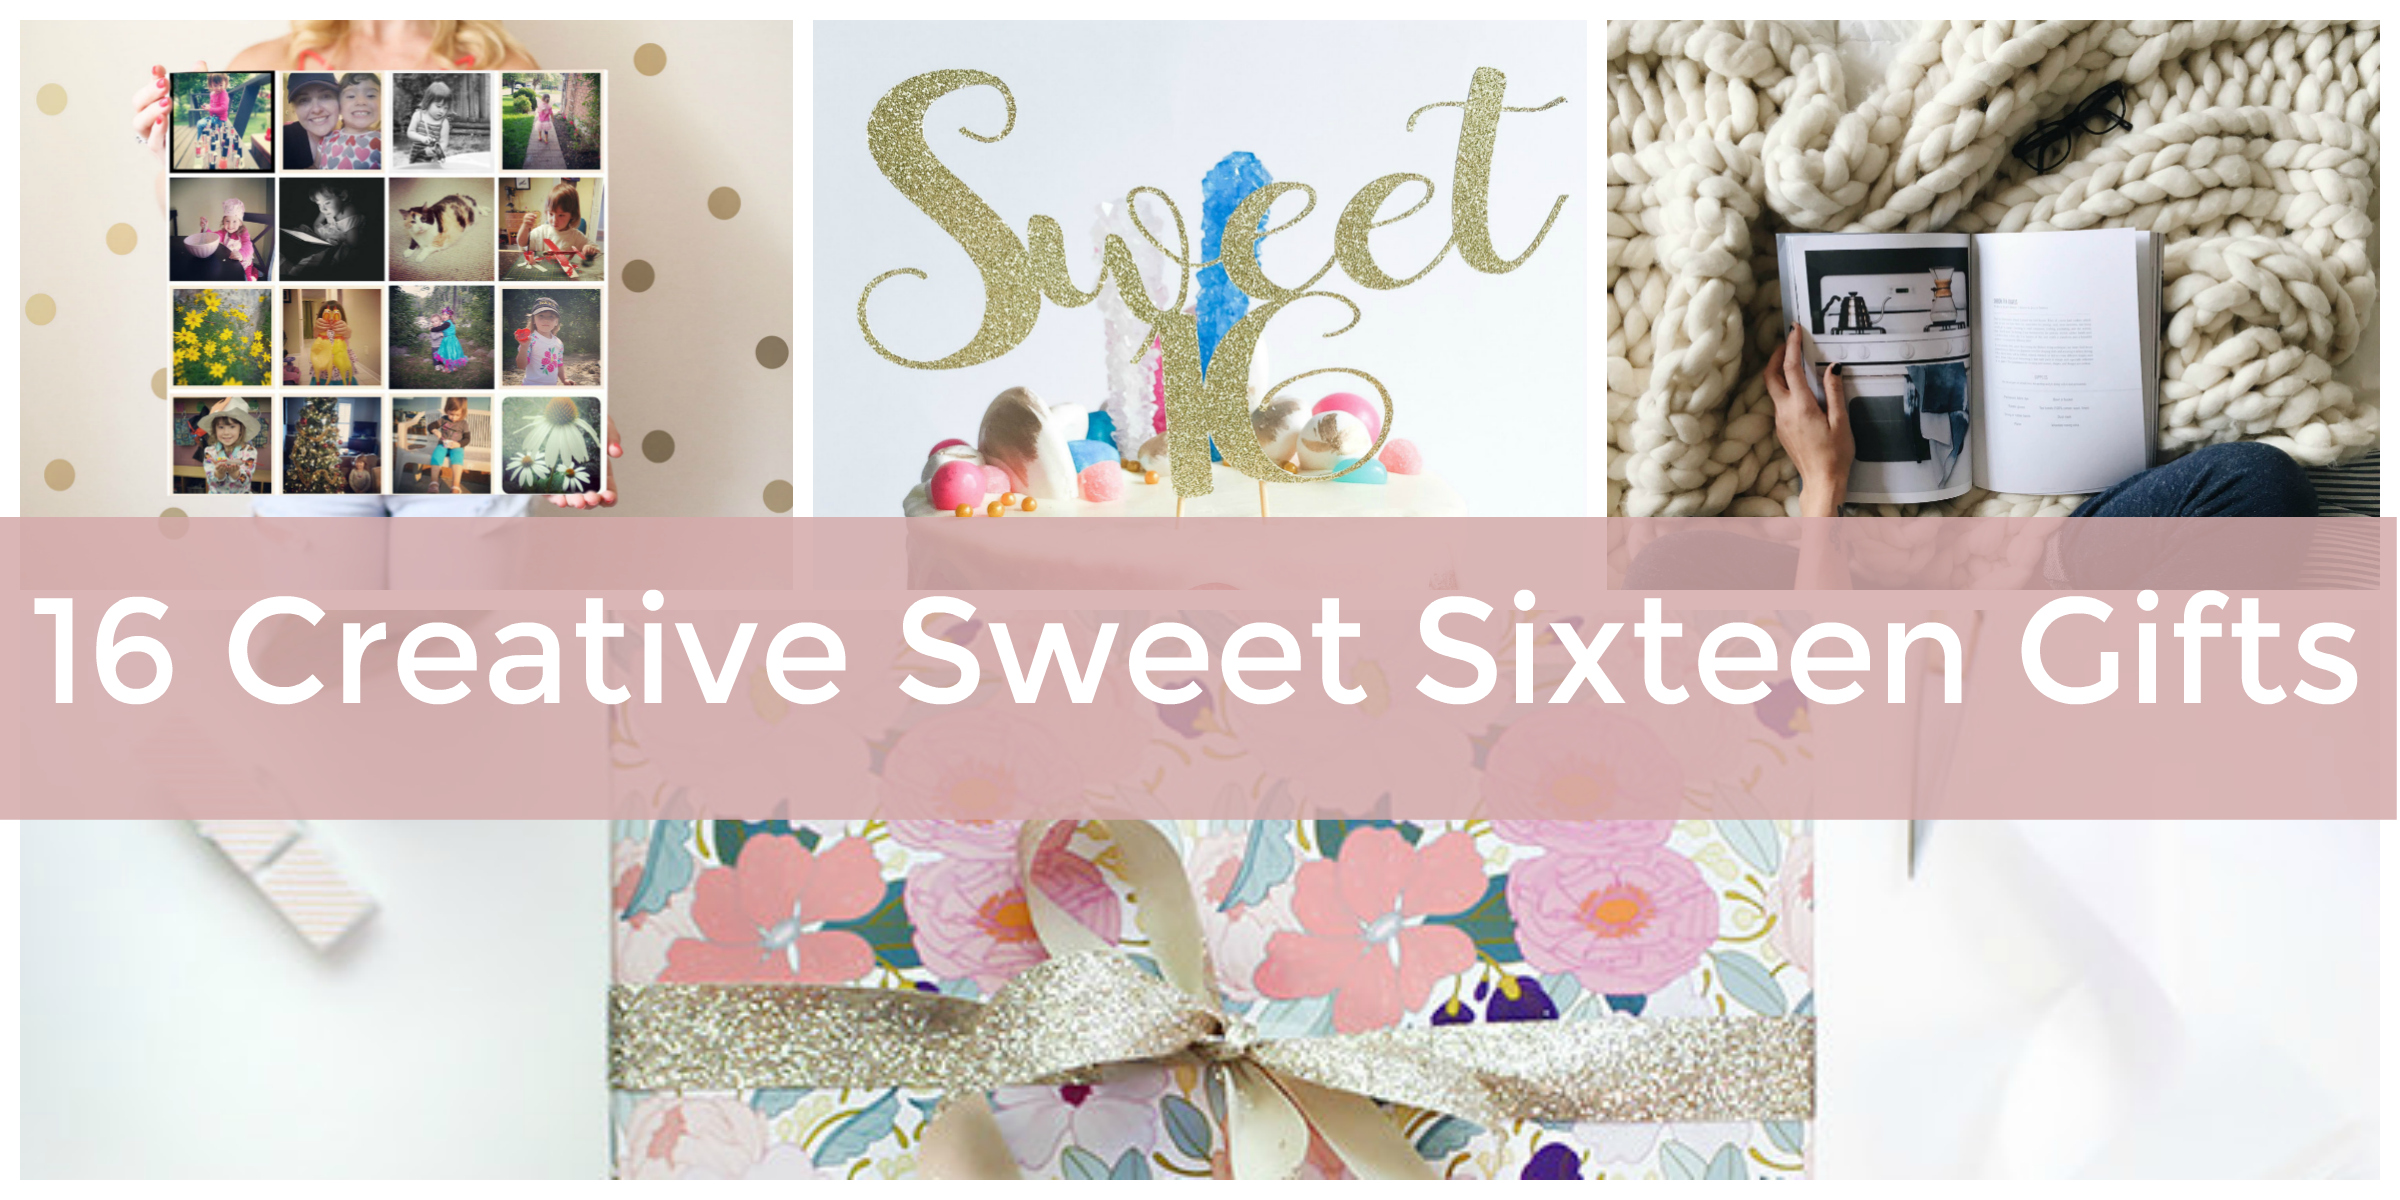 16 creative sweet sixteen birthday gift ideas - elfster blog